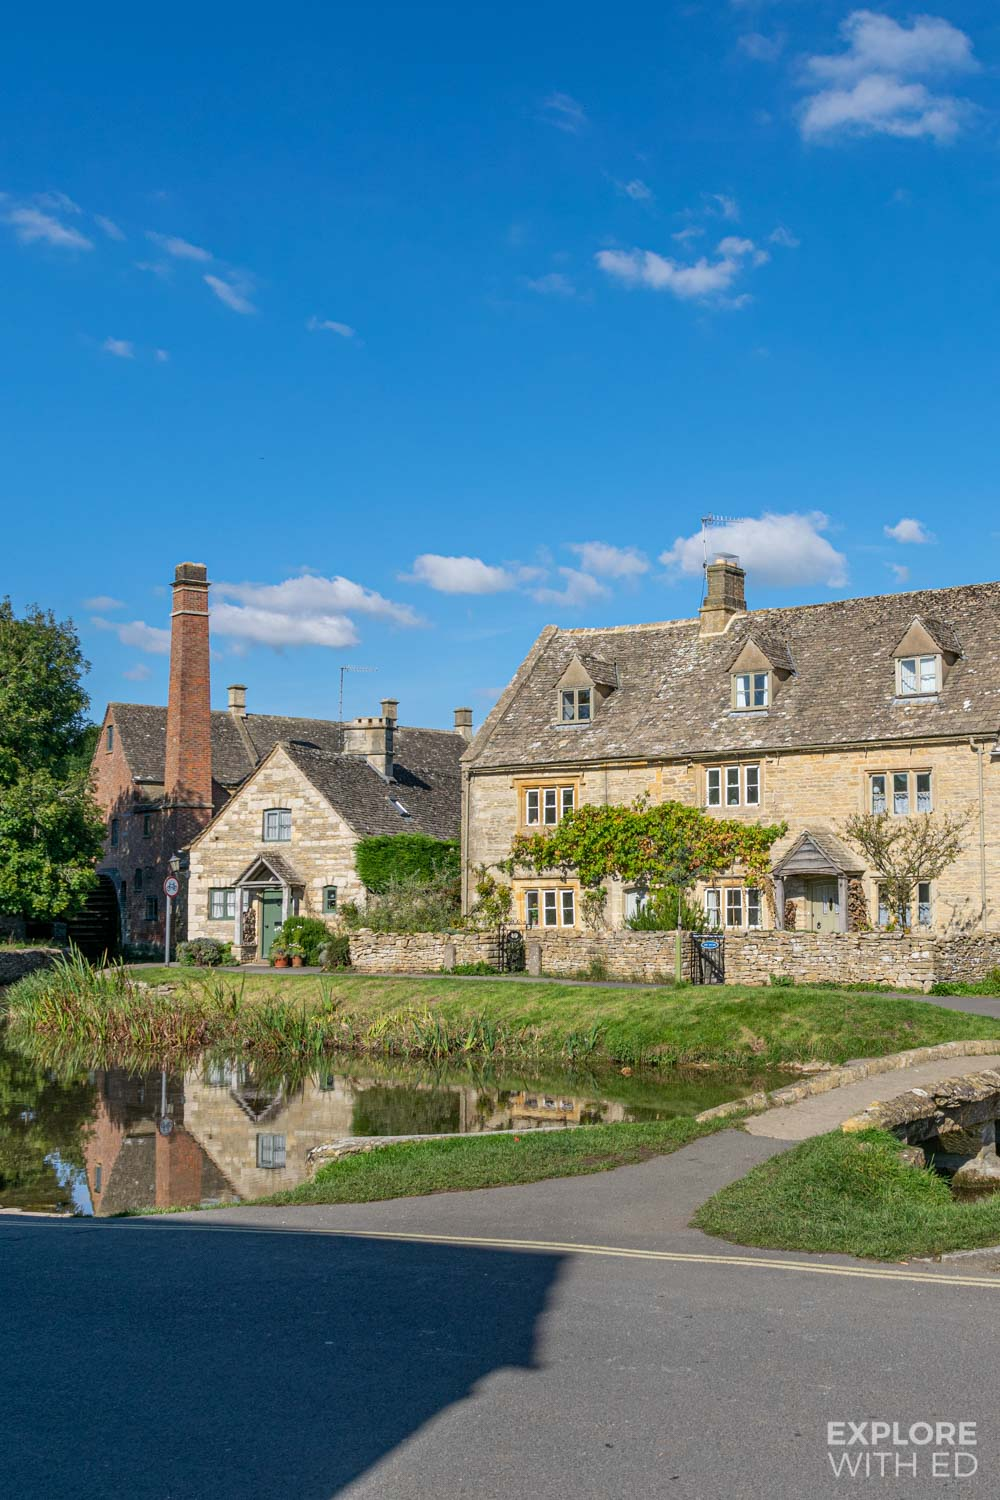 Lower Slaughter and the Old Mill with a gift and craft shop